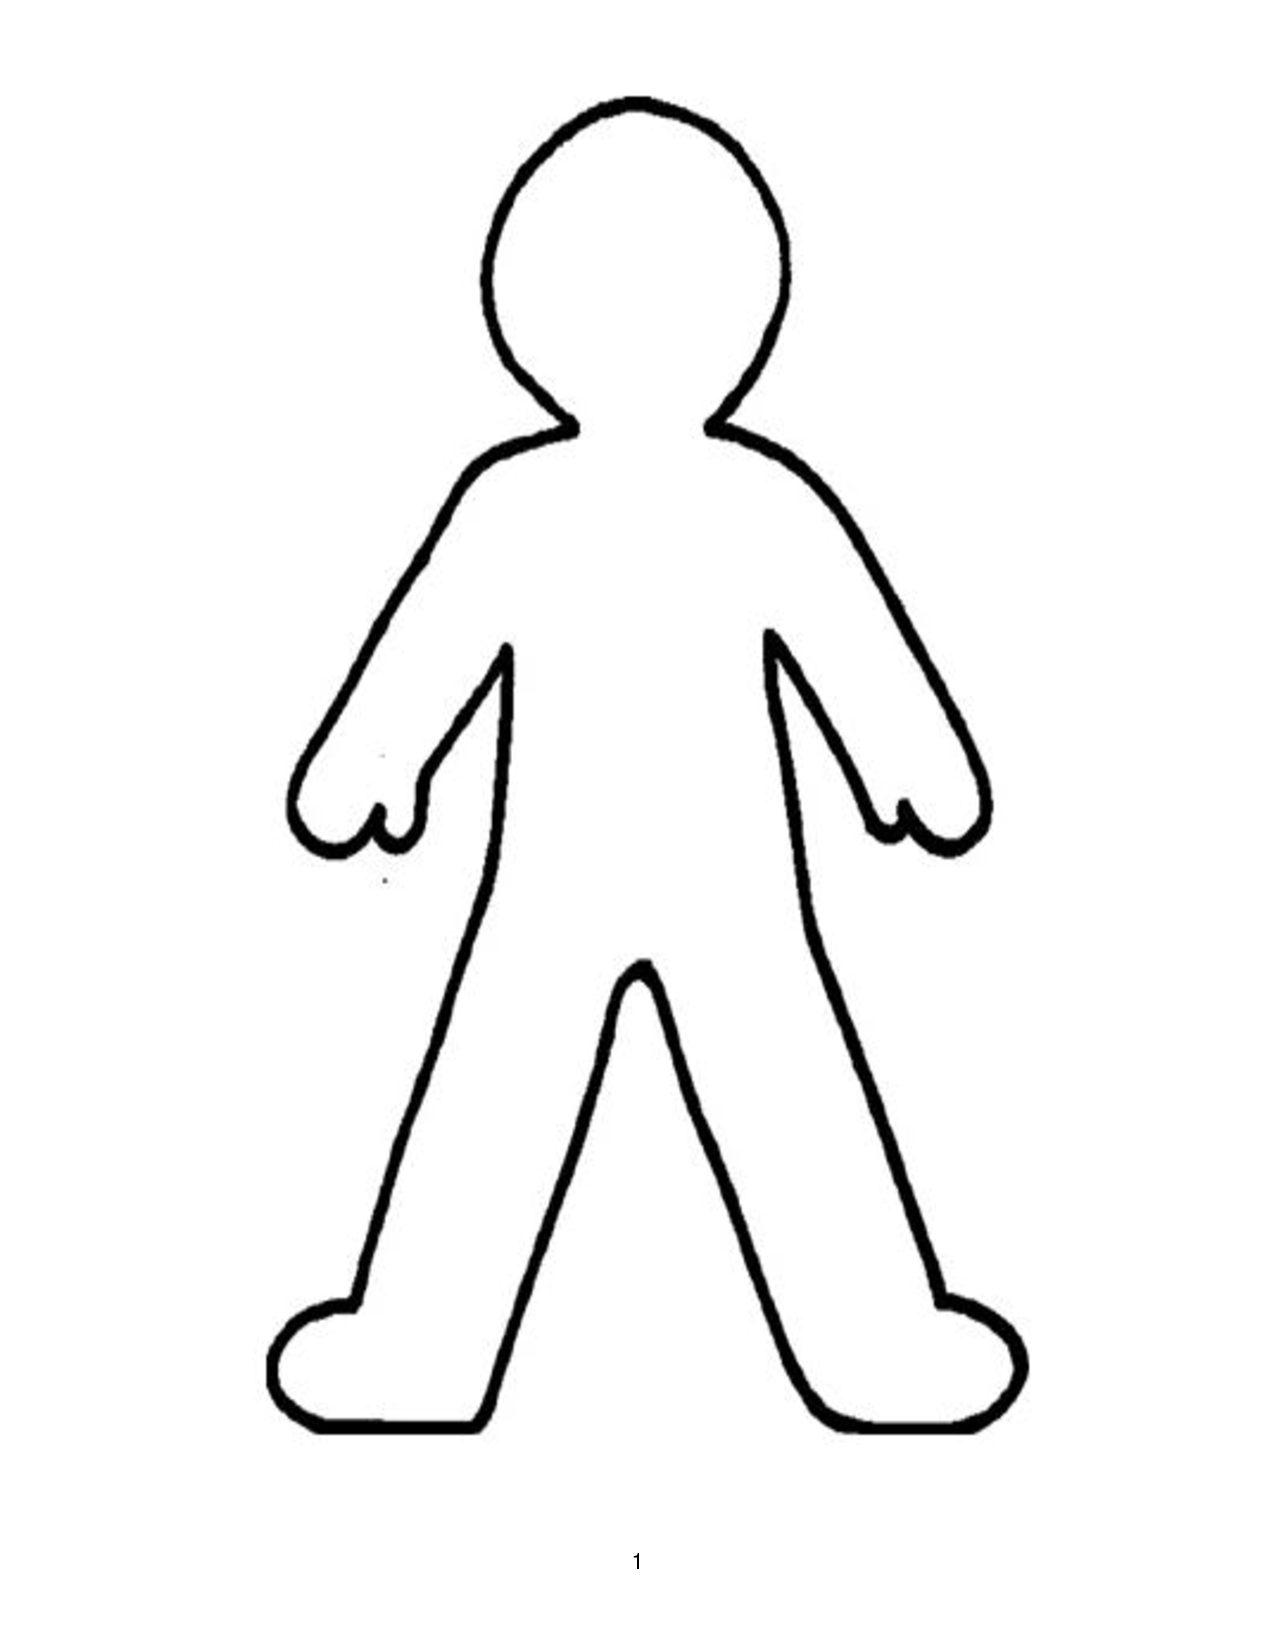 graphic Body clipart. Free outline cliparts download.